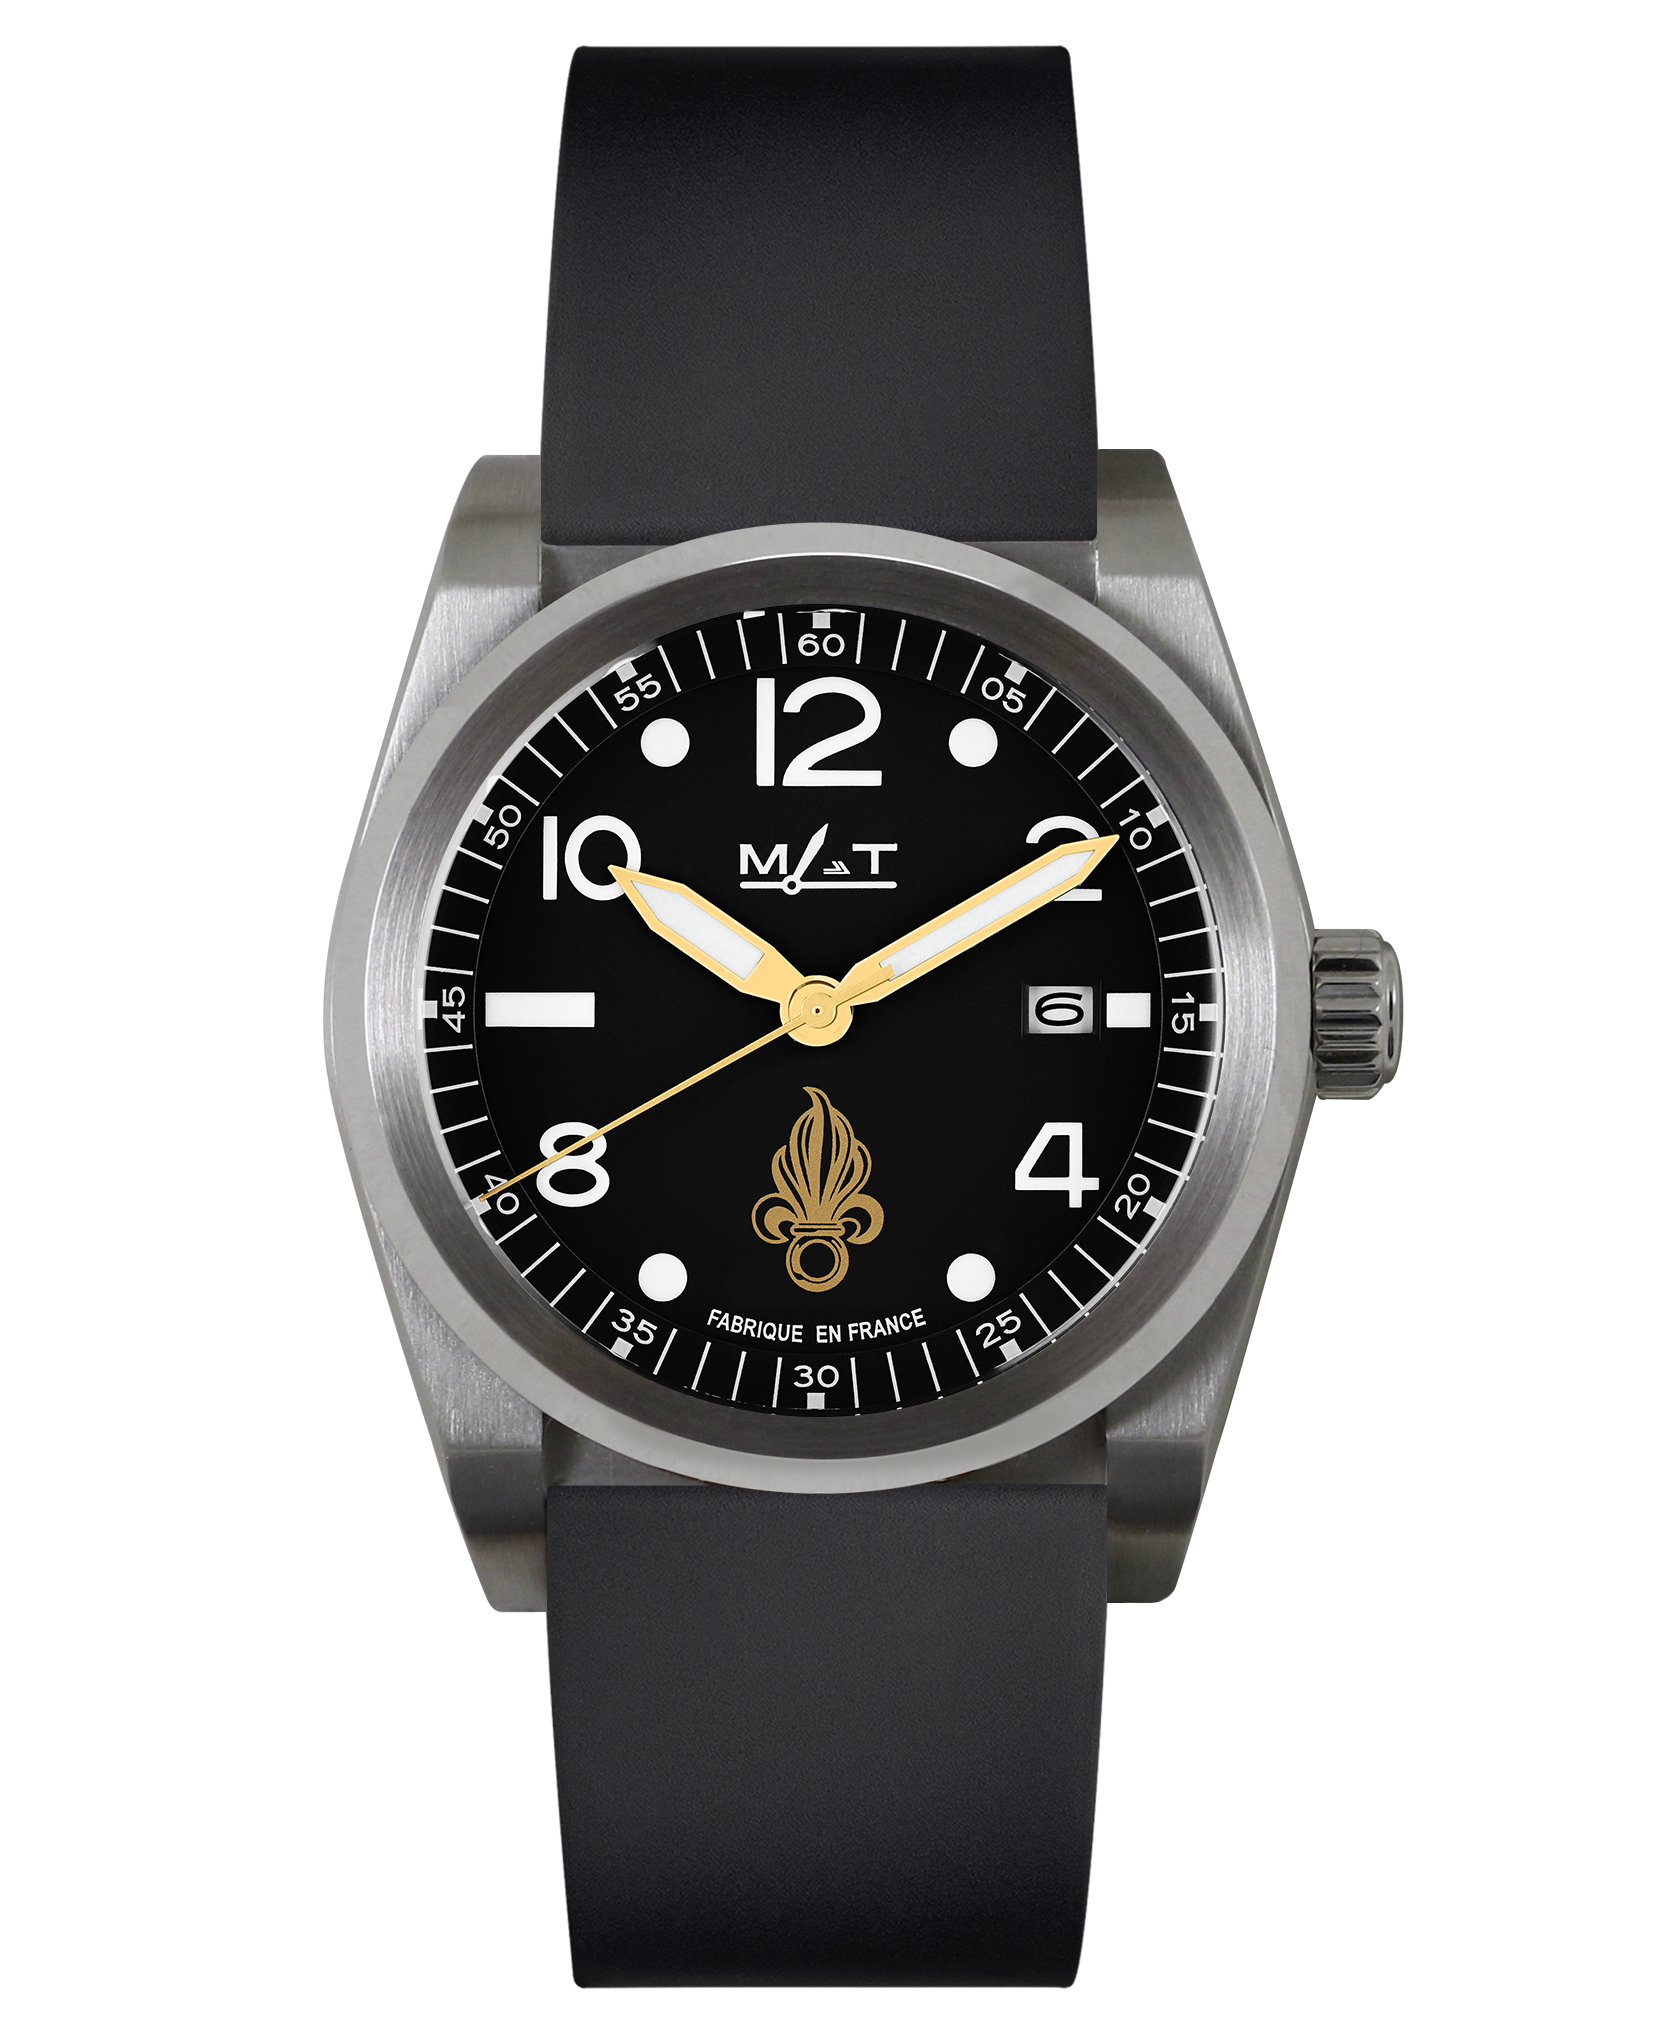 matwatches high command l 201 gion